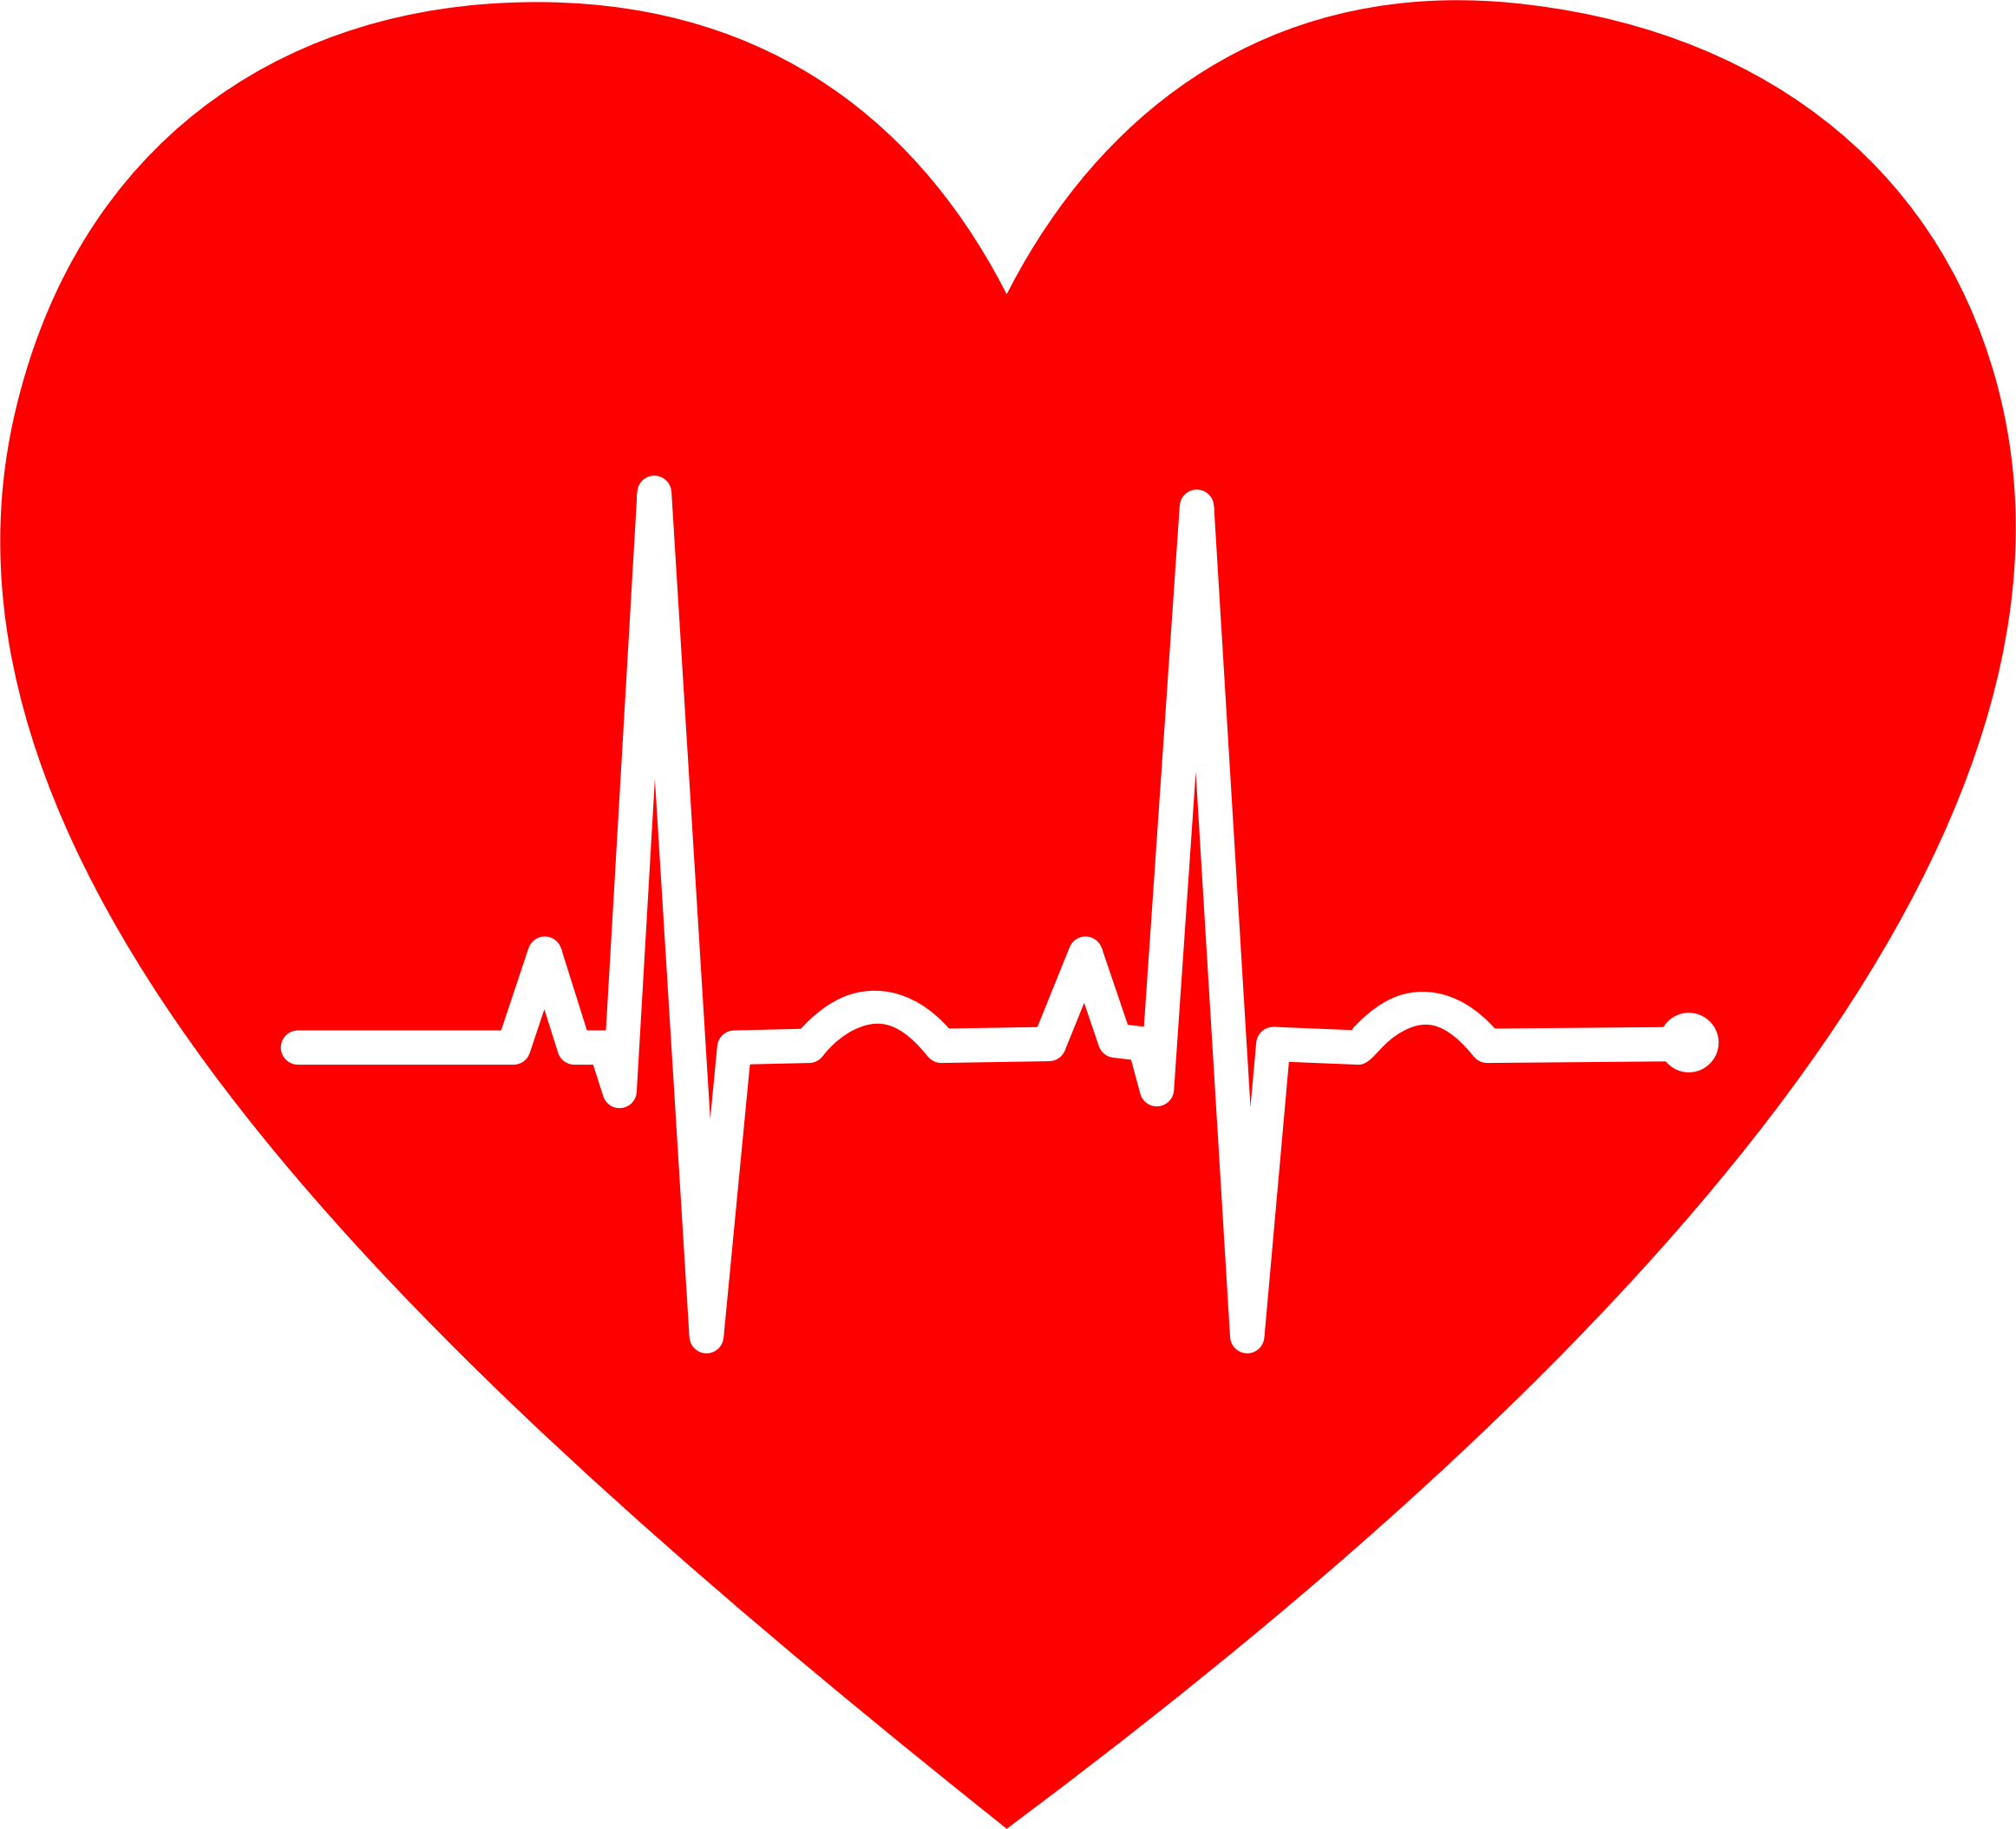 Ekg svg heart shaped. Icons png free and